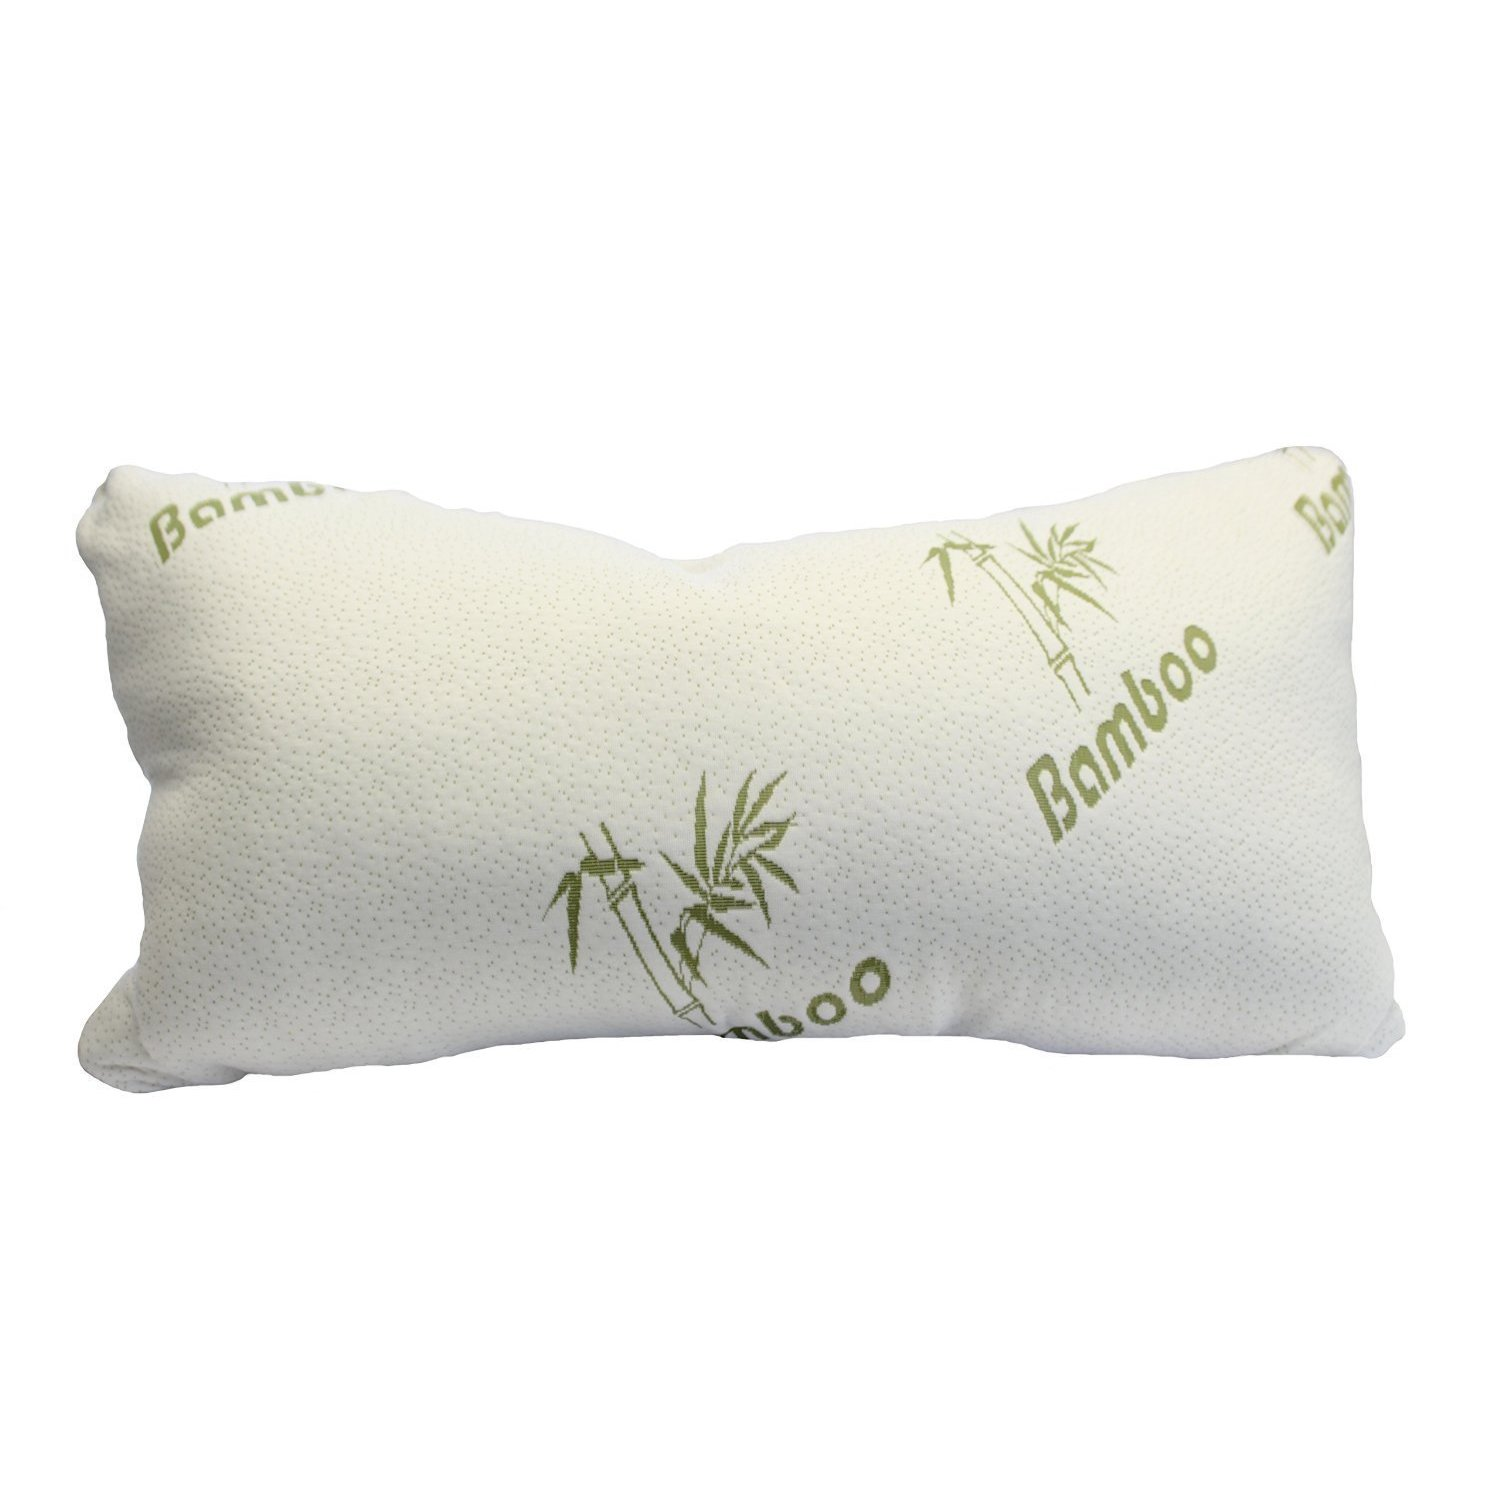 Magic Shredded Memory Foam Pillow with Rayon from Bamboo ...